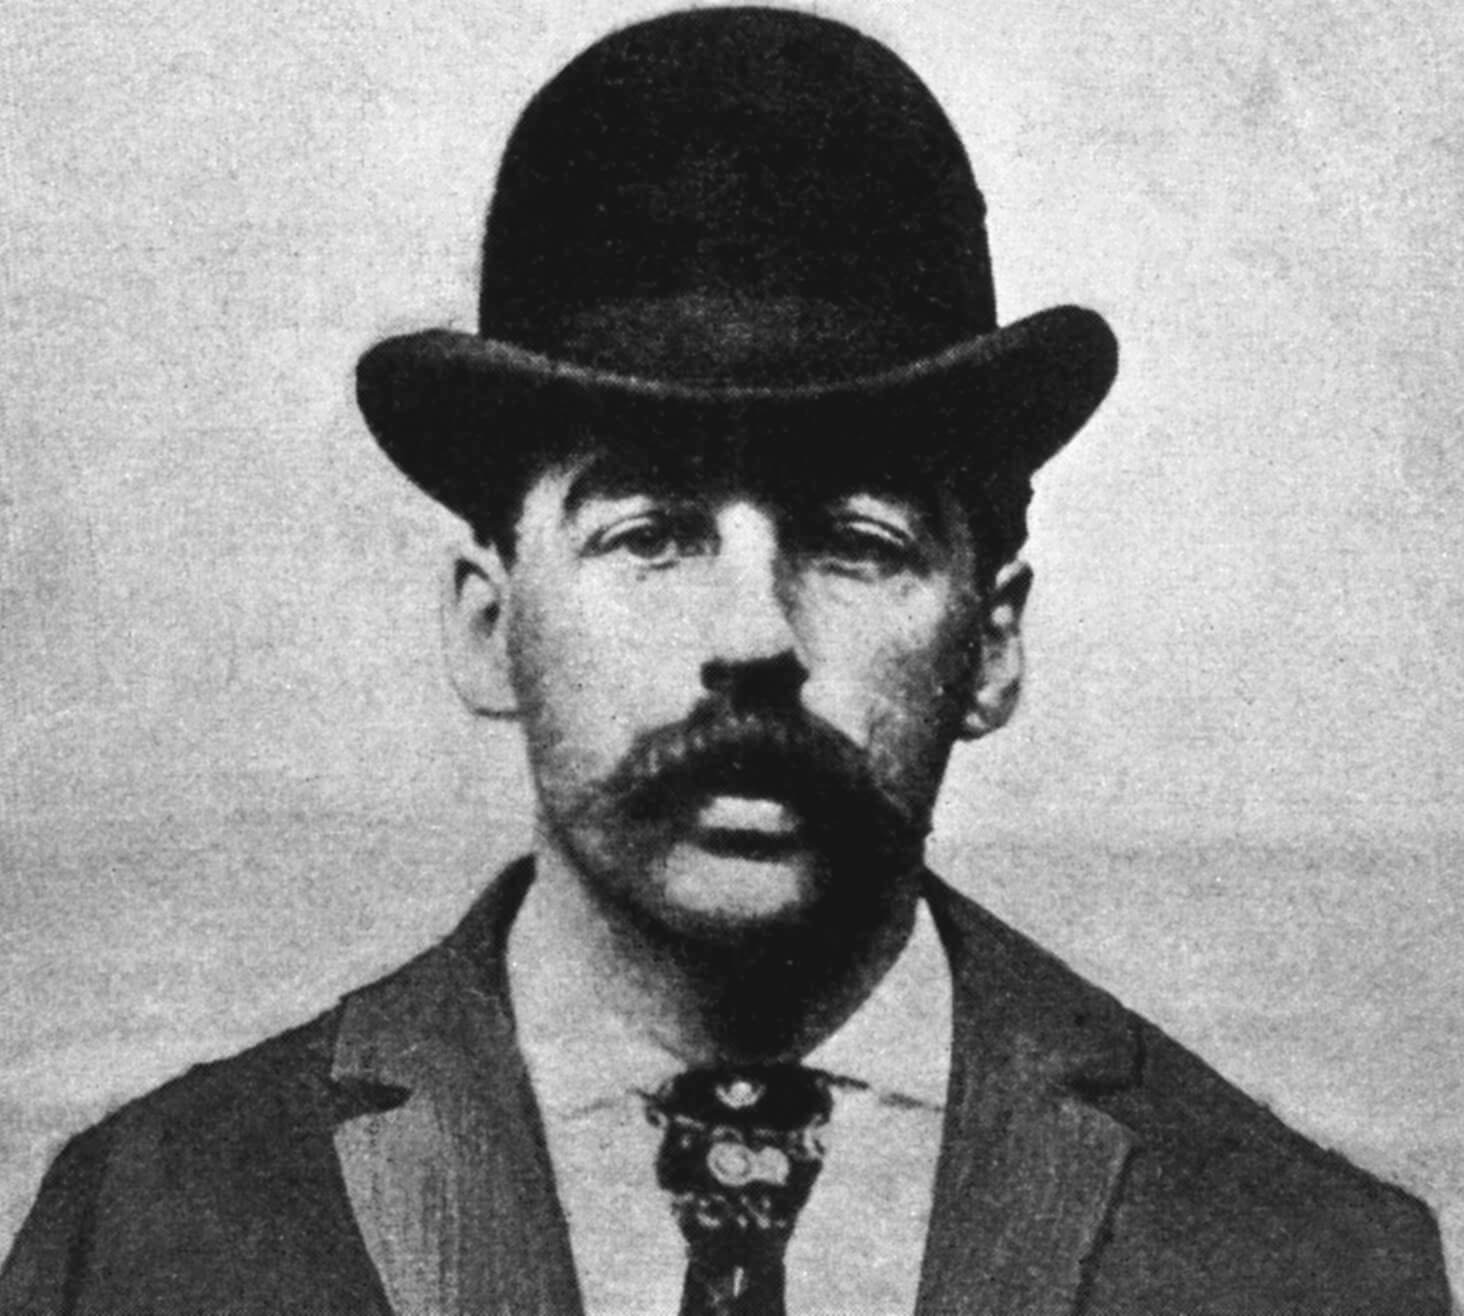 #10 H. H. Holmes | Evil Villains With Royal Lifestyles | Image Source: en.wikipedia.org